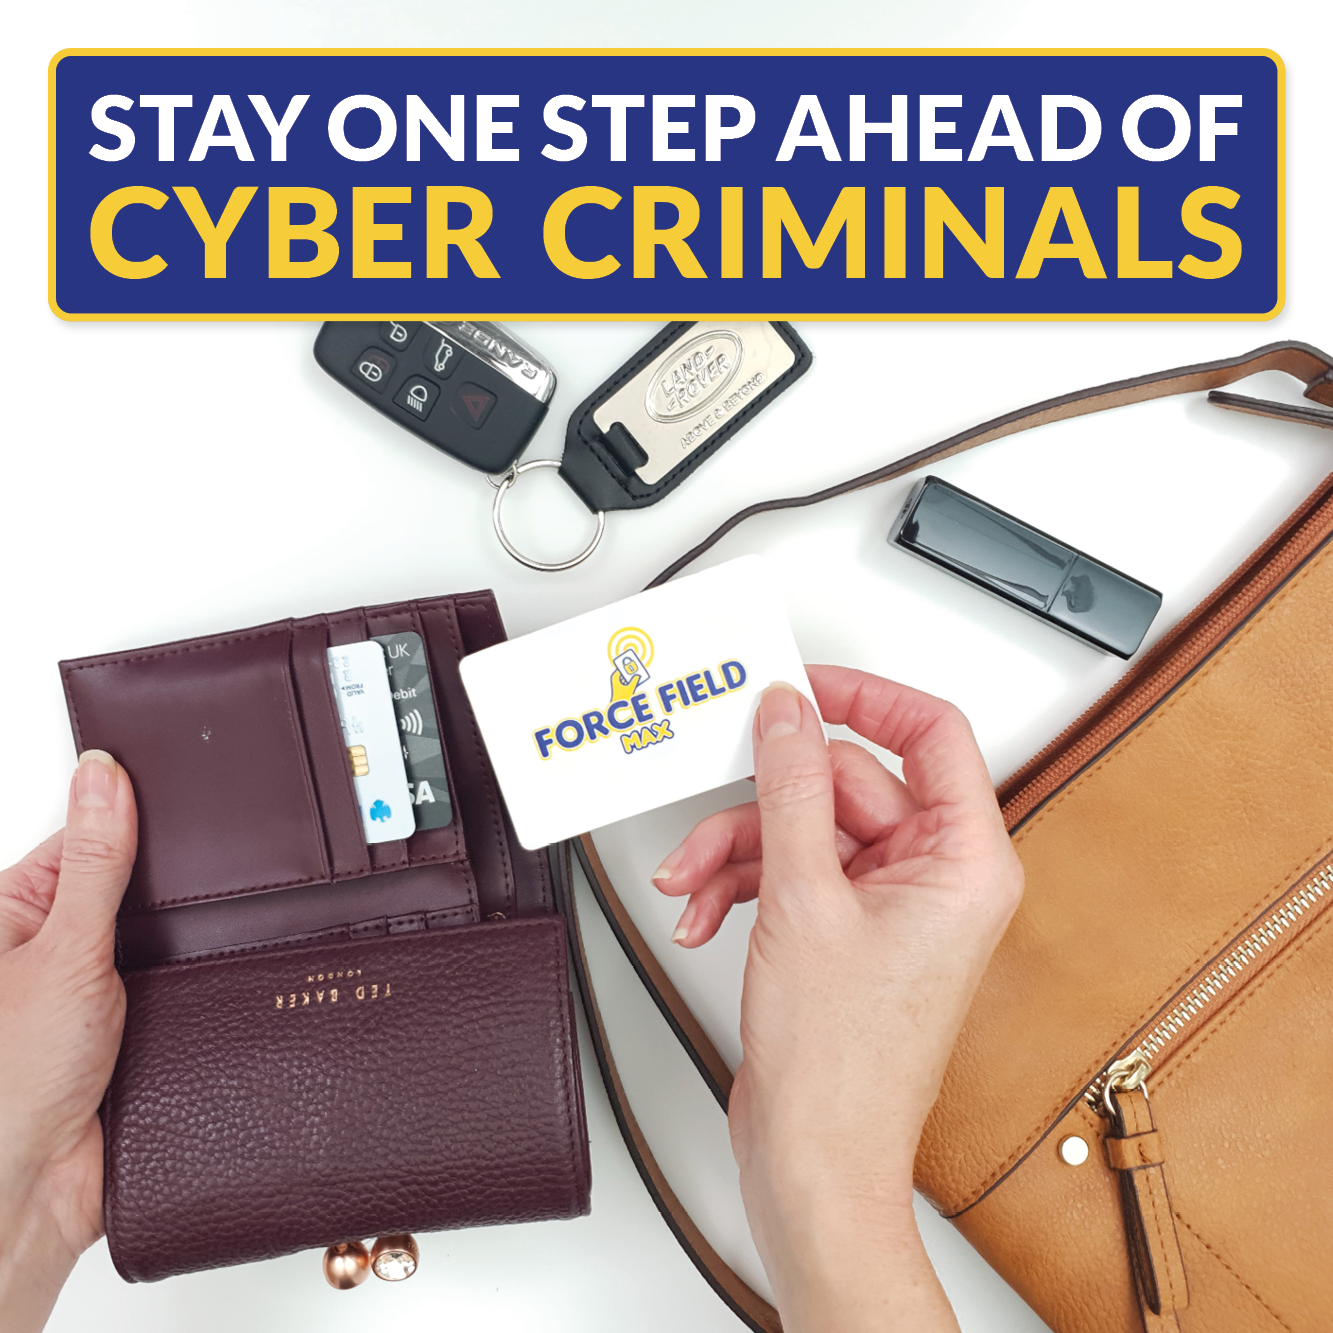 Stay one step ahead of cyber criminals